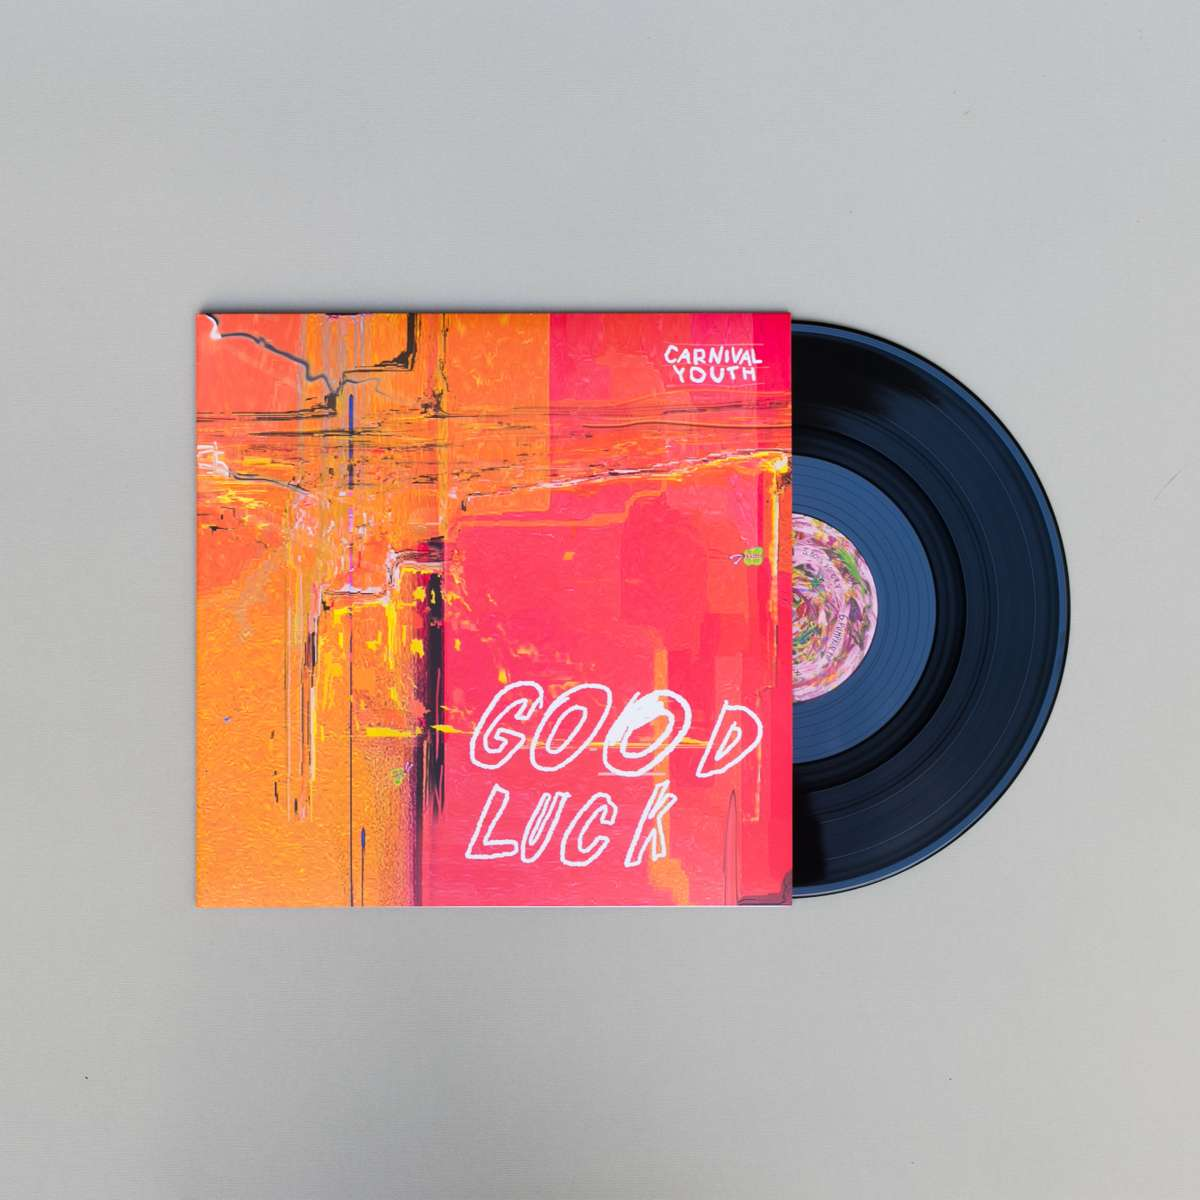 """Good Luck Limited Edition 12"""" Double Vinyl - Carnival Youth"""